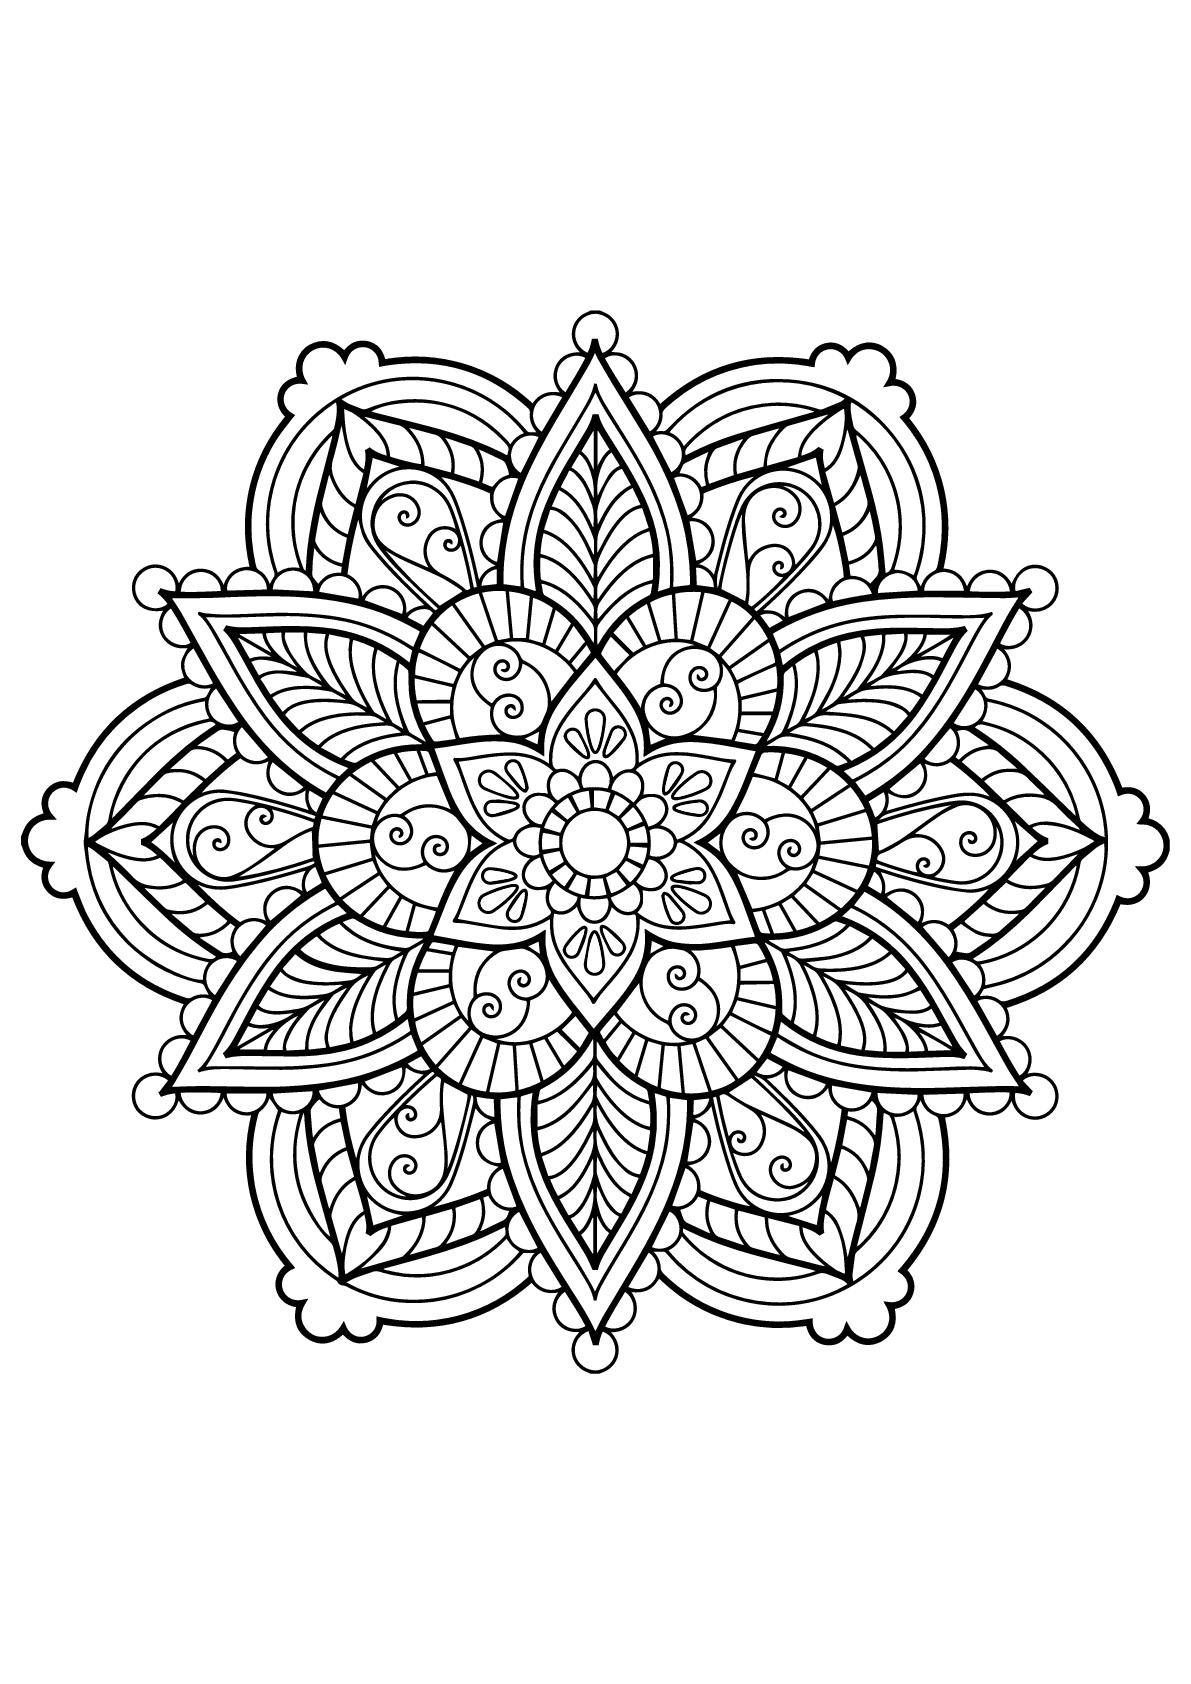 Mandala From Free Coloring Books For Adults 28